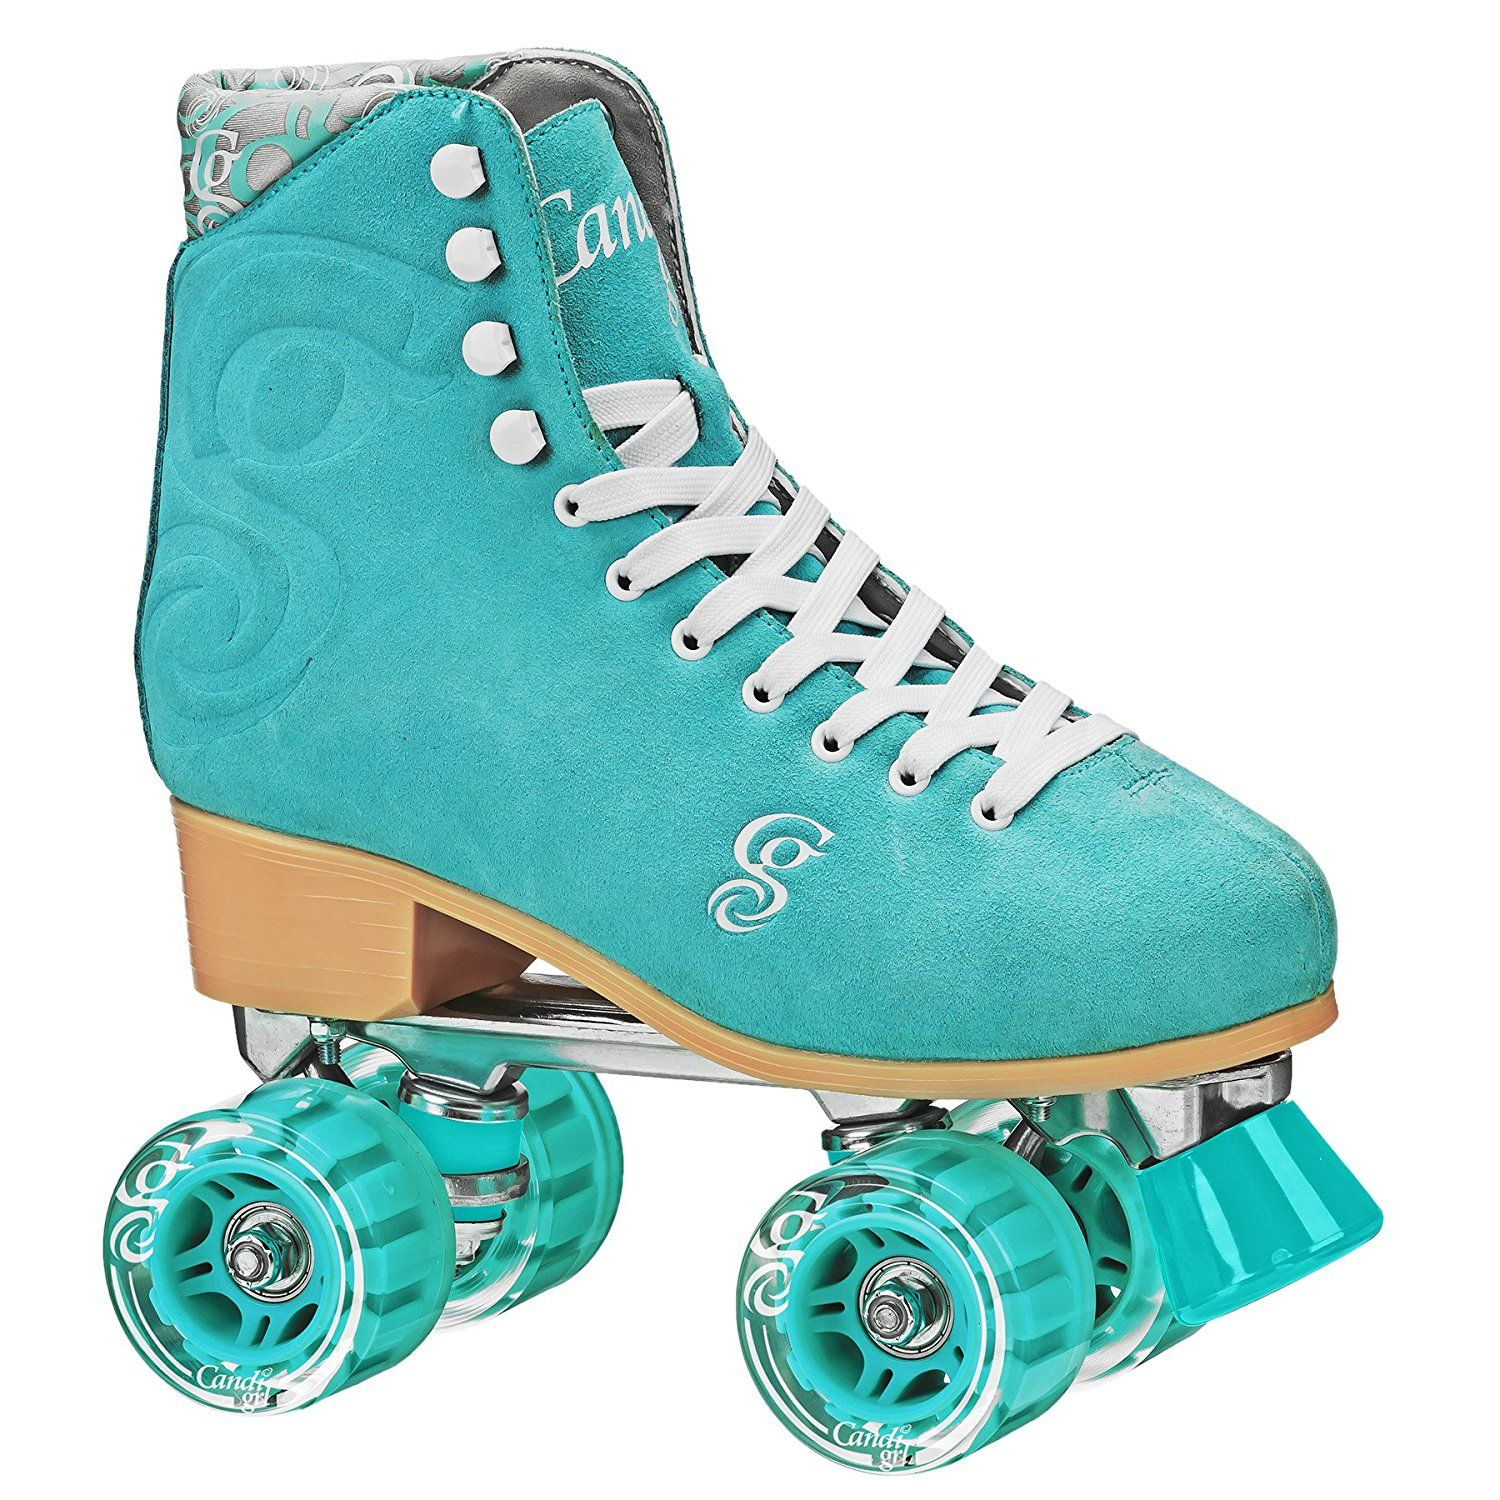 Quad roller skates amazon - Amazon Com Roller Derby Candi Girl Women Colorful Roller Skates Sports Outdoors